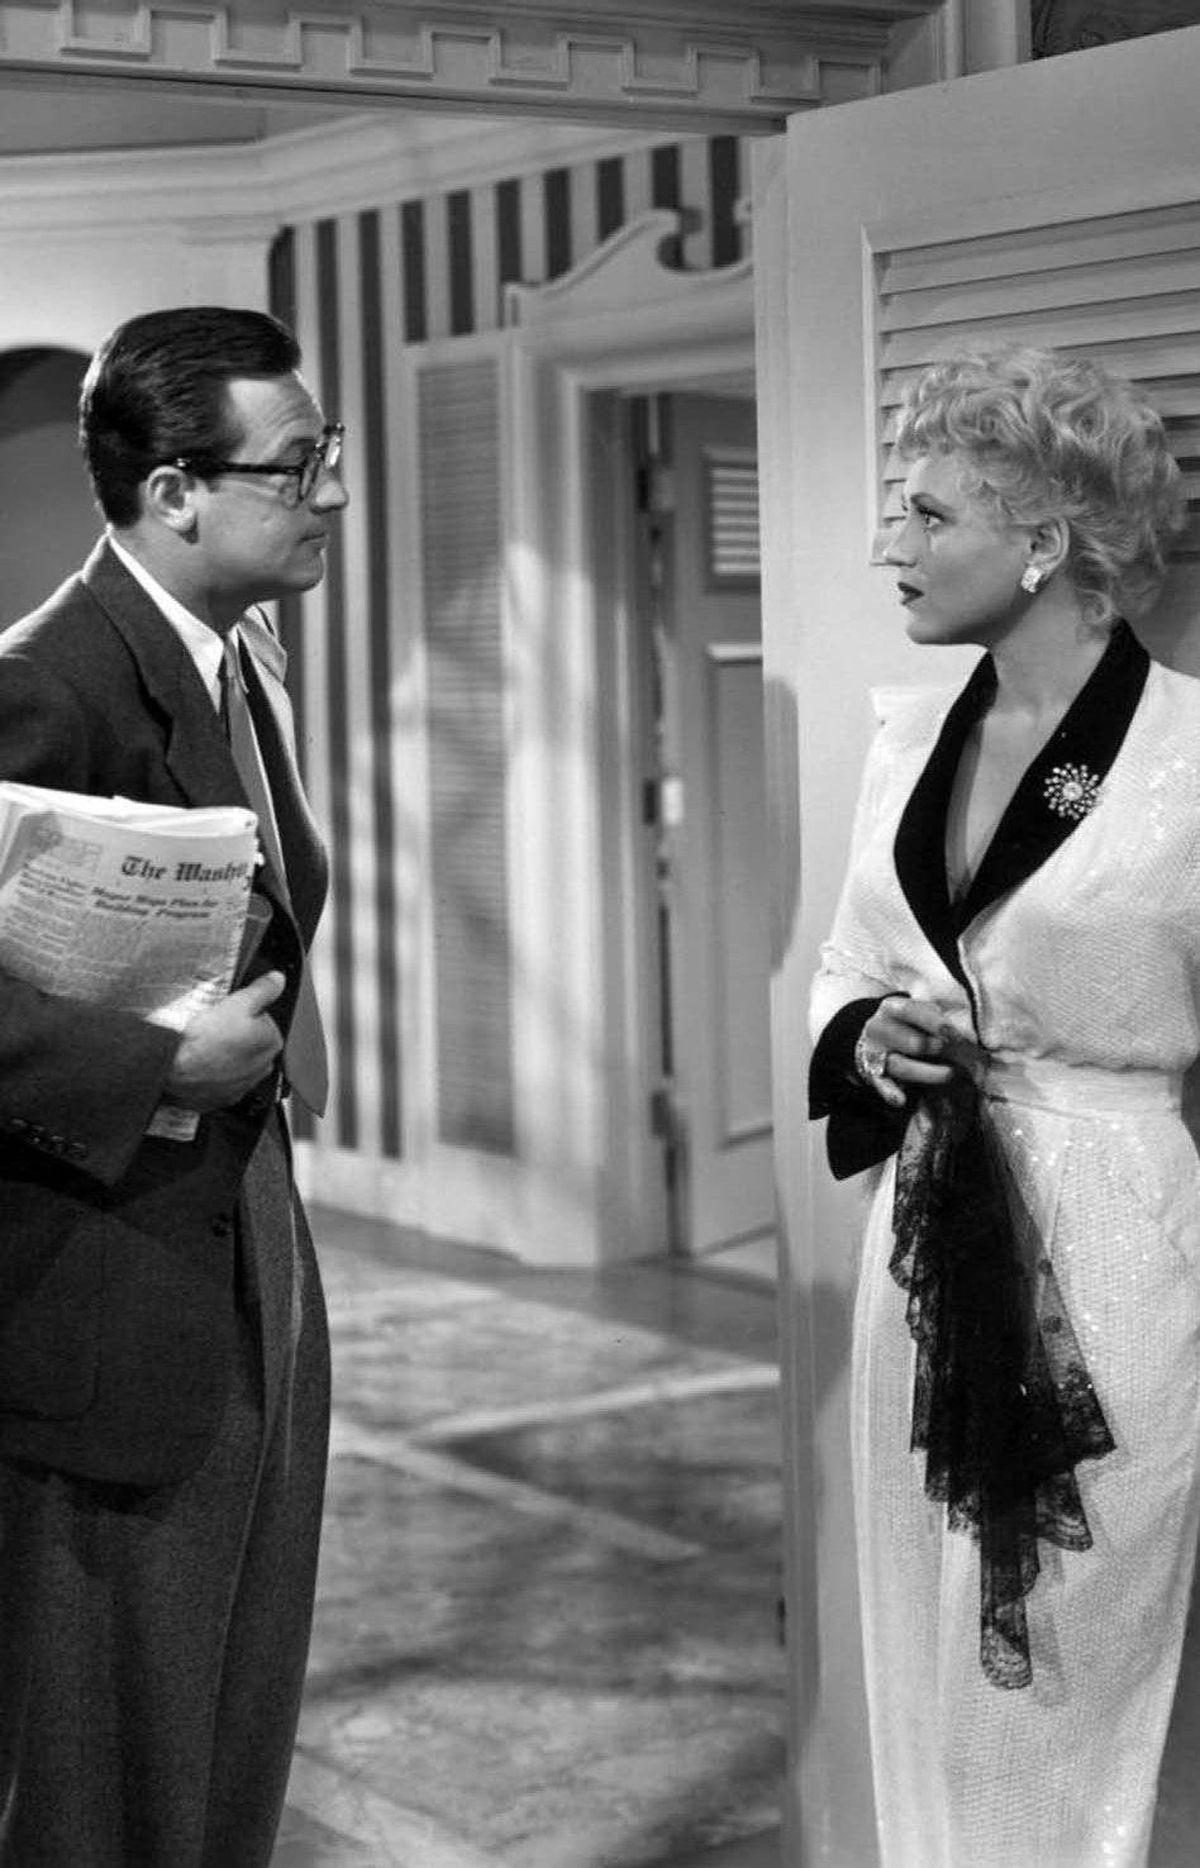 MOVIE Born Yesterday TCM, midnight ET; 9 p.m. PT Required viewing for any serious cineaste, this 1950 comedy marked the career peak of the late, great Judy Holliday. The blonde comic actress earned an Oscar for her portrayal of Billie, the shrill ex-chorus girl mistress of crooked junk tycoon Harry Buck (Broderick Crawford). While in Washington to bribe some politicians, Harry tries to improve Billie's crass manners by hiring the impoverished journalist Paul (William Holden) to school her in the social graces. The results are positively Pygmalionesque.